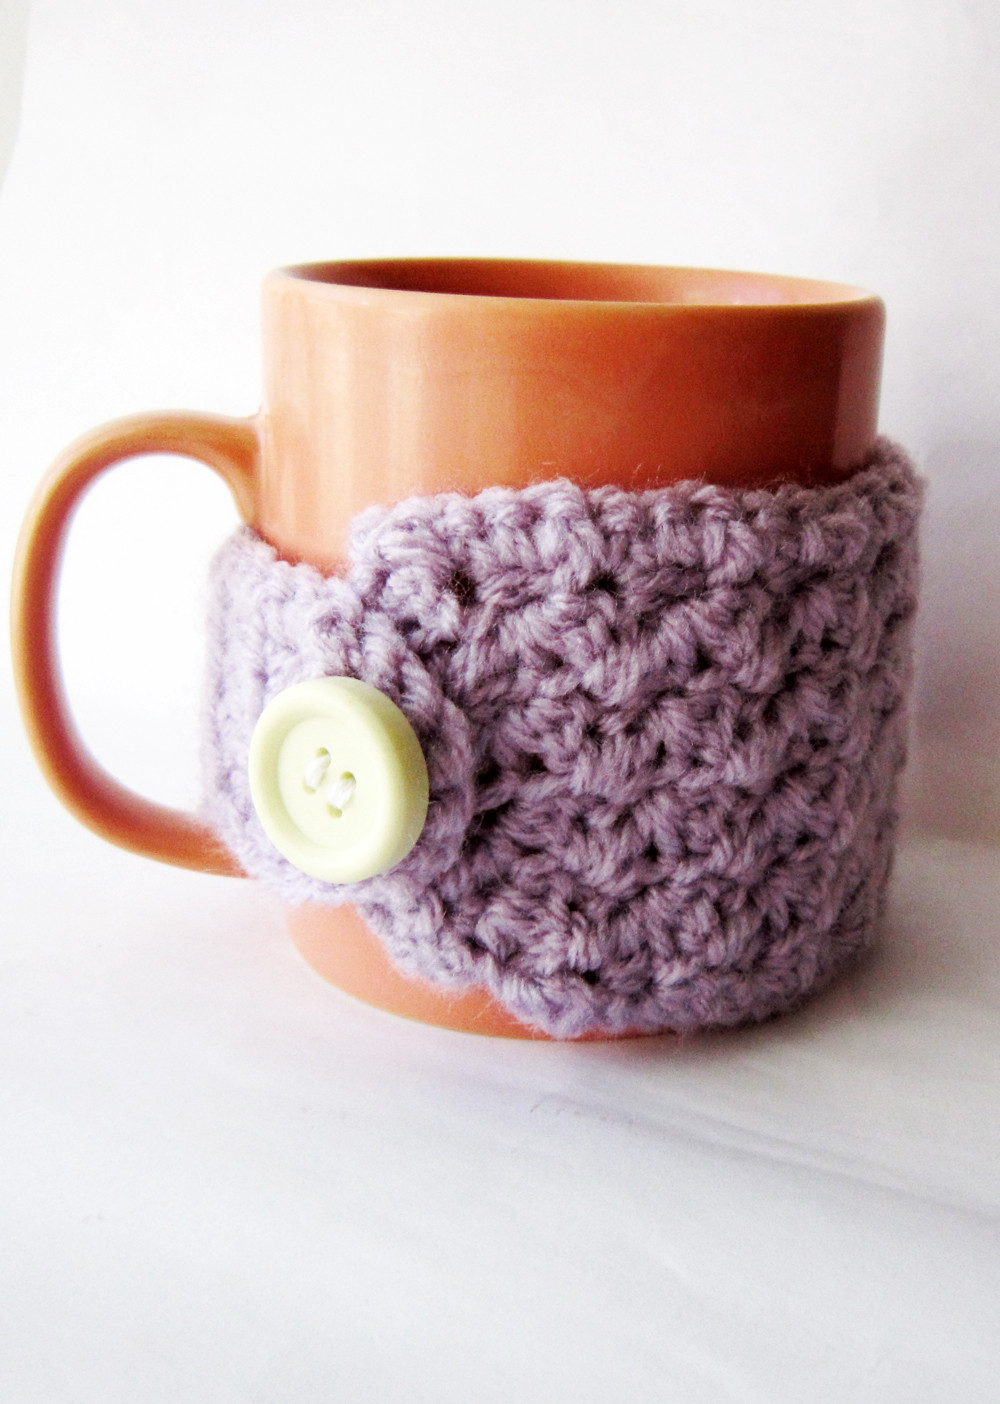 Crochet Coffee Cup Cozy Inspirational Easy Crochet Mug Cozy Free Pattern Akamatra Of Crochet Coffee Cup Cozy Elegant Wooftastic Puppy Crochet Coffee Cozy